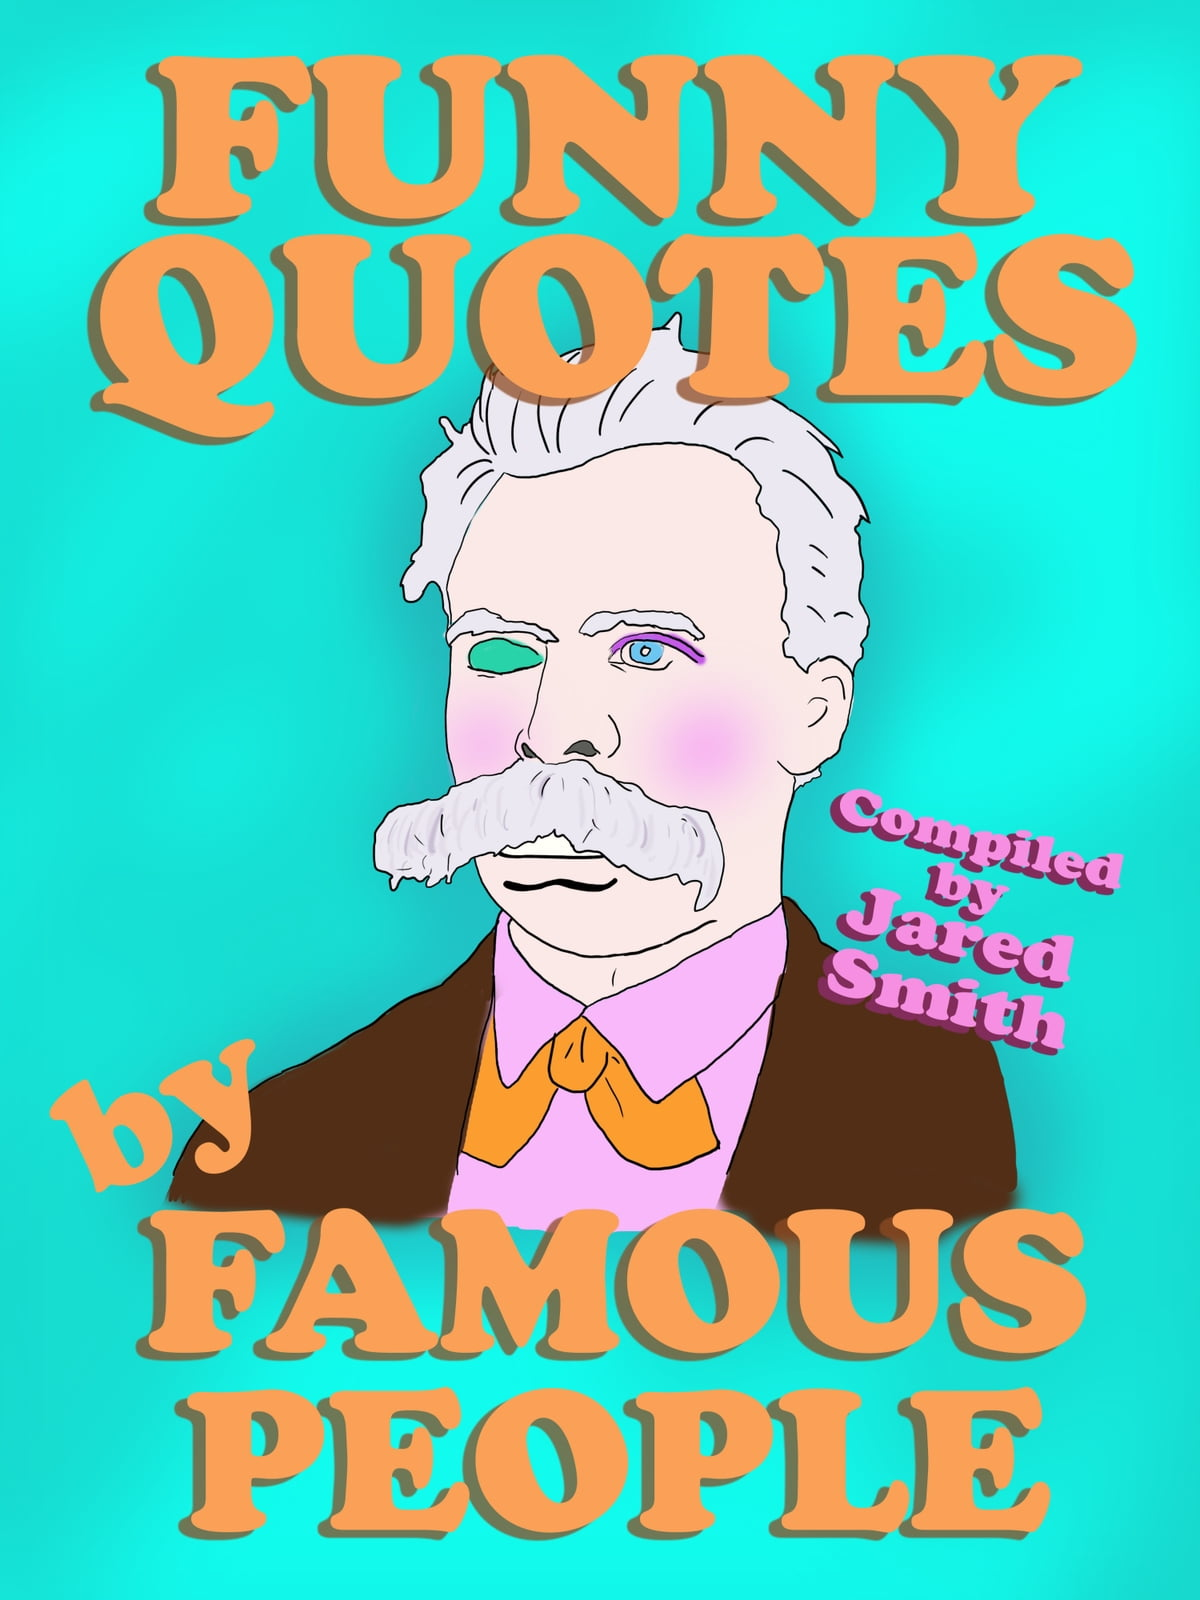 Funny Quotes By Famous People : funny, quotes, famous, people, Funny, Quotes, Famous, People, EBook, Tabitha, Carrington, Rakuten